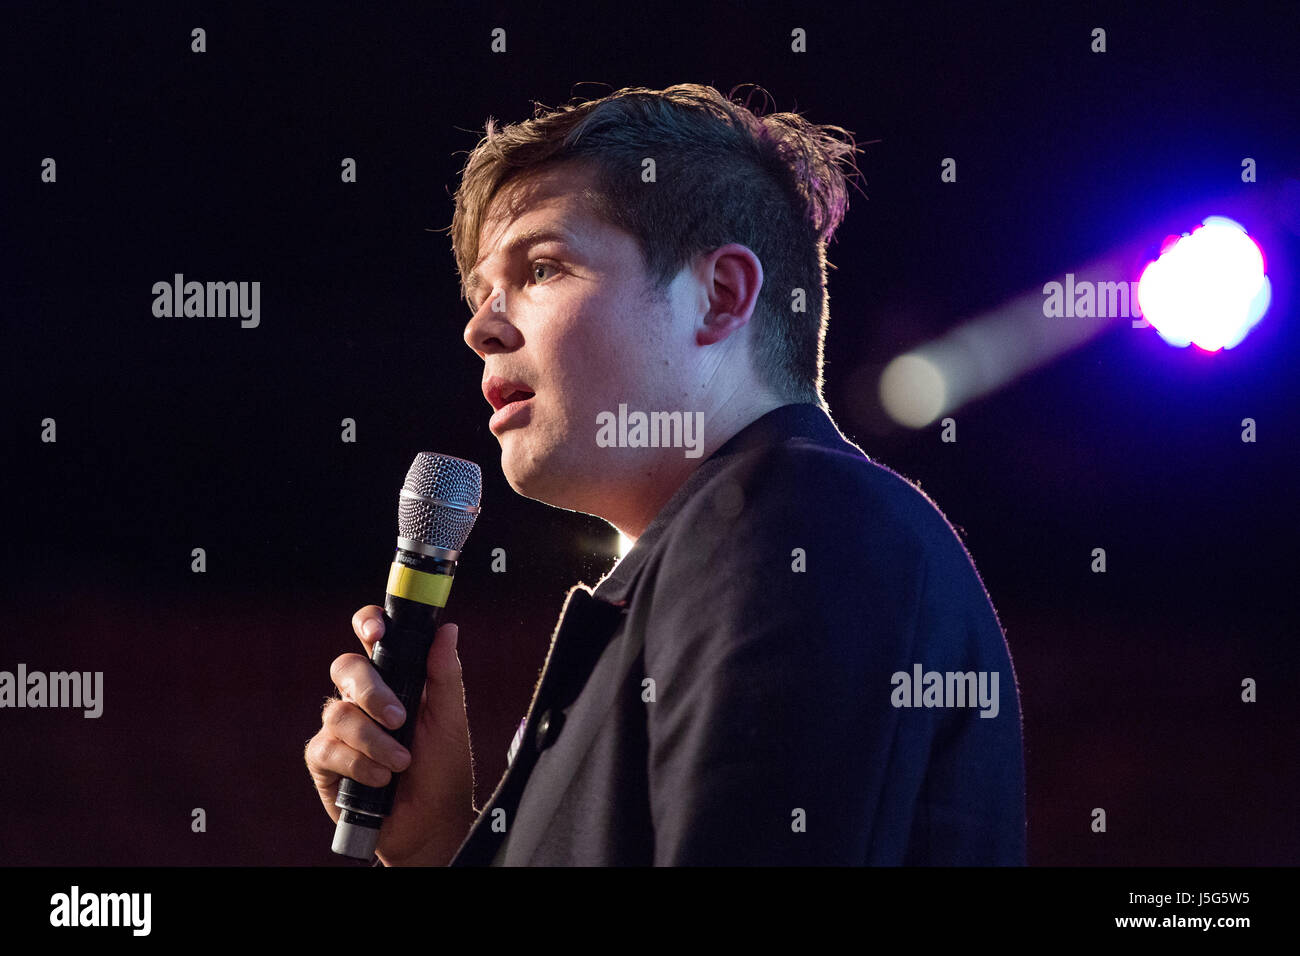 London, UK. 15th May, 2017. Poet Luke Wright performs at the launch event for the Progressive Alliance. - Stock Image